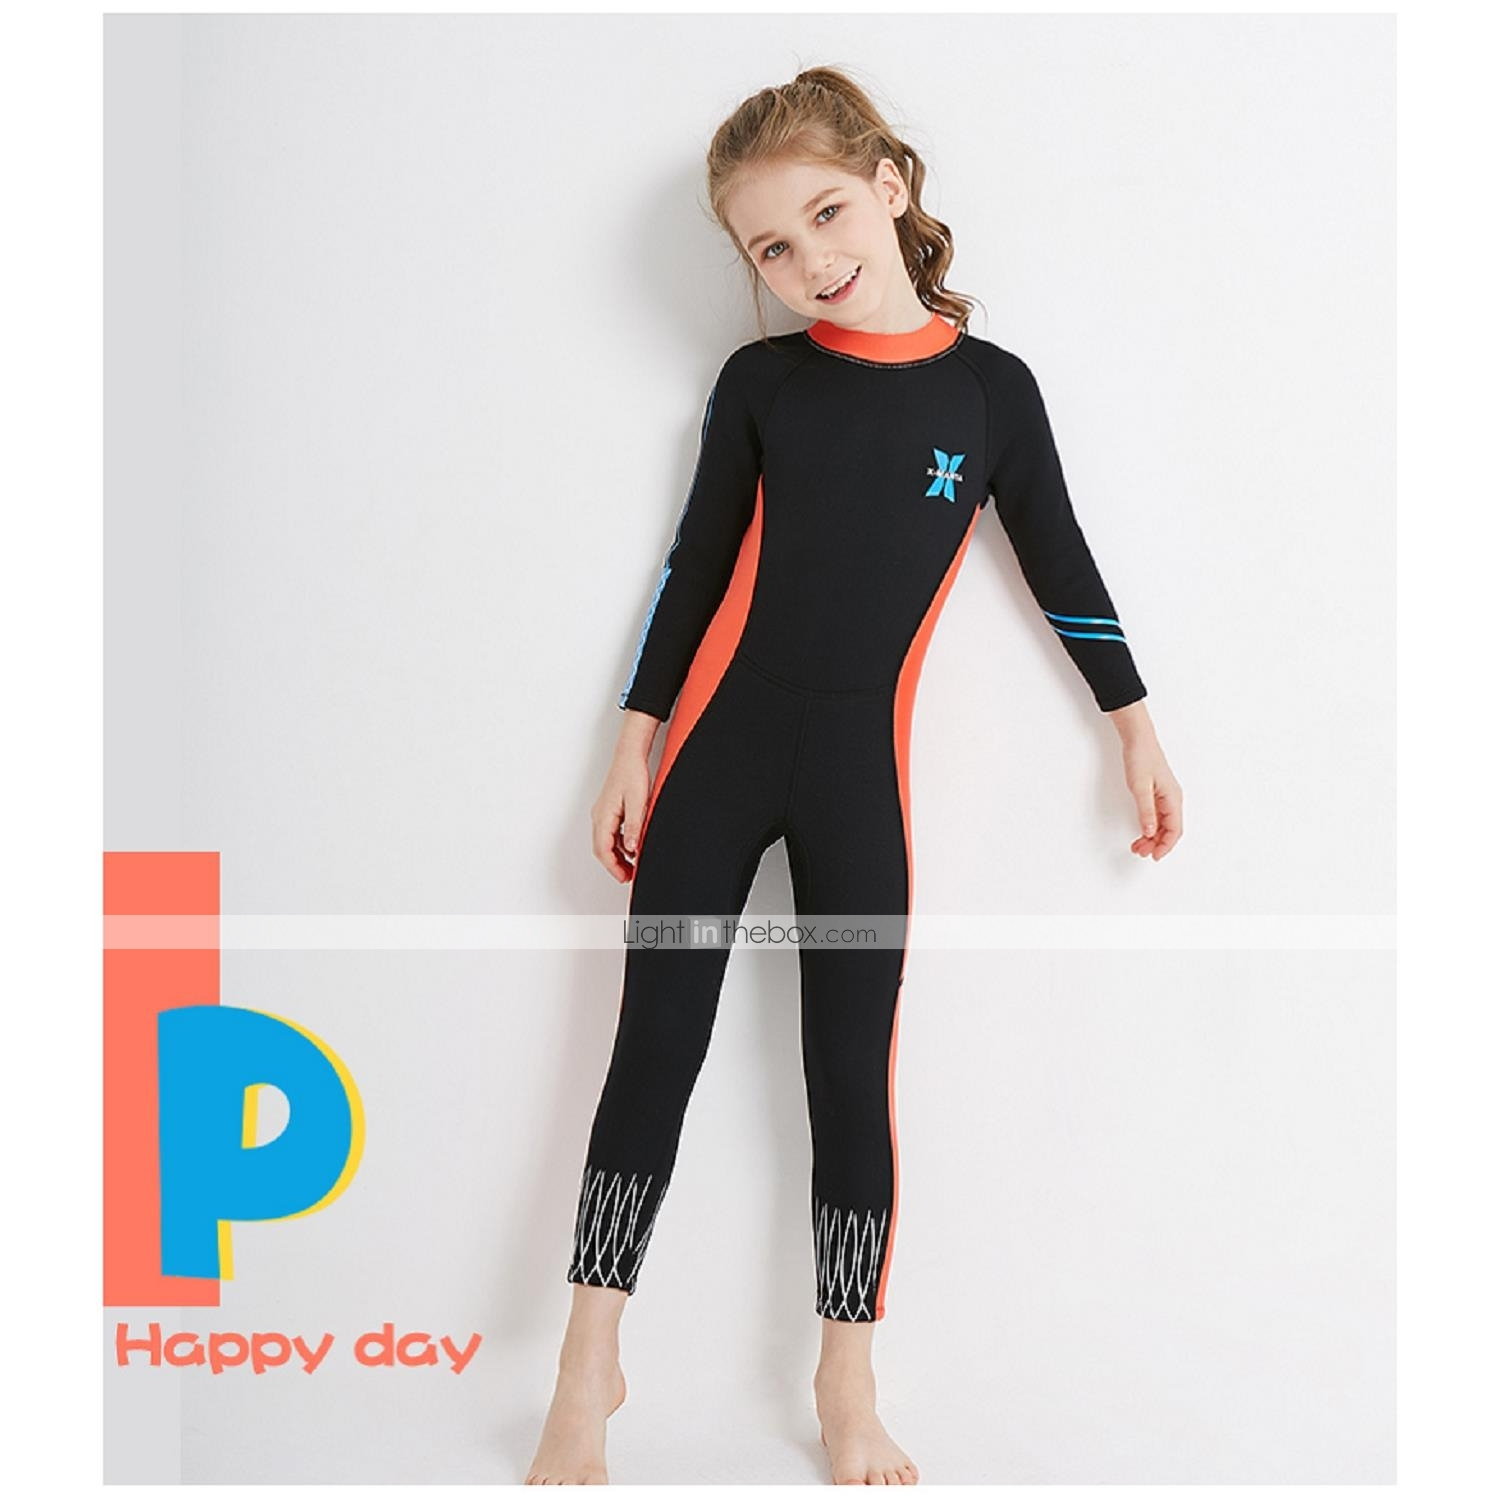 Girls  Full Wetsuit 2.5mm Spandex SCR Neoprene Diving Suit Sun Shirt ... 2163d22b1